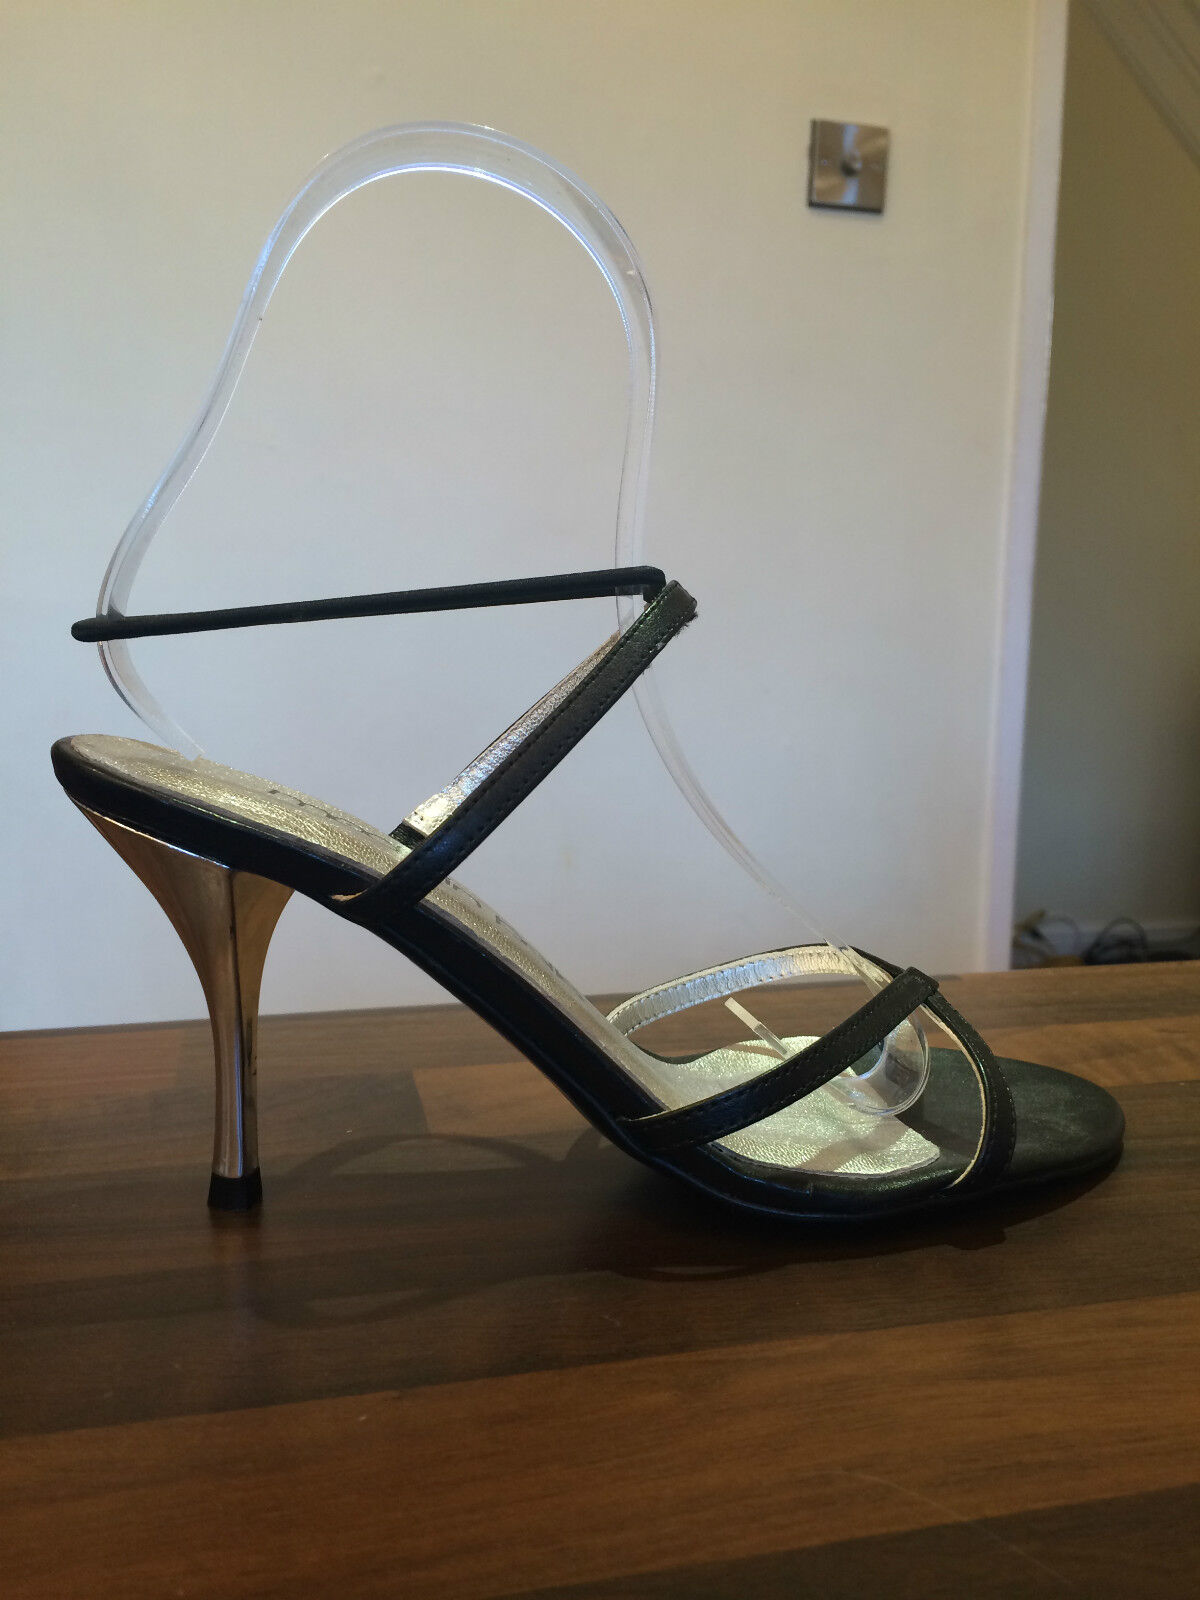 MODA IN PELLE Sexy Black Strappy Sandals High Heels Shoes Size 3 NEW